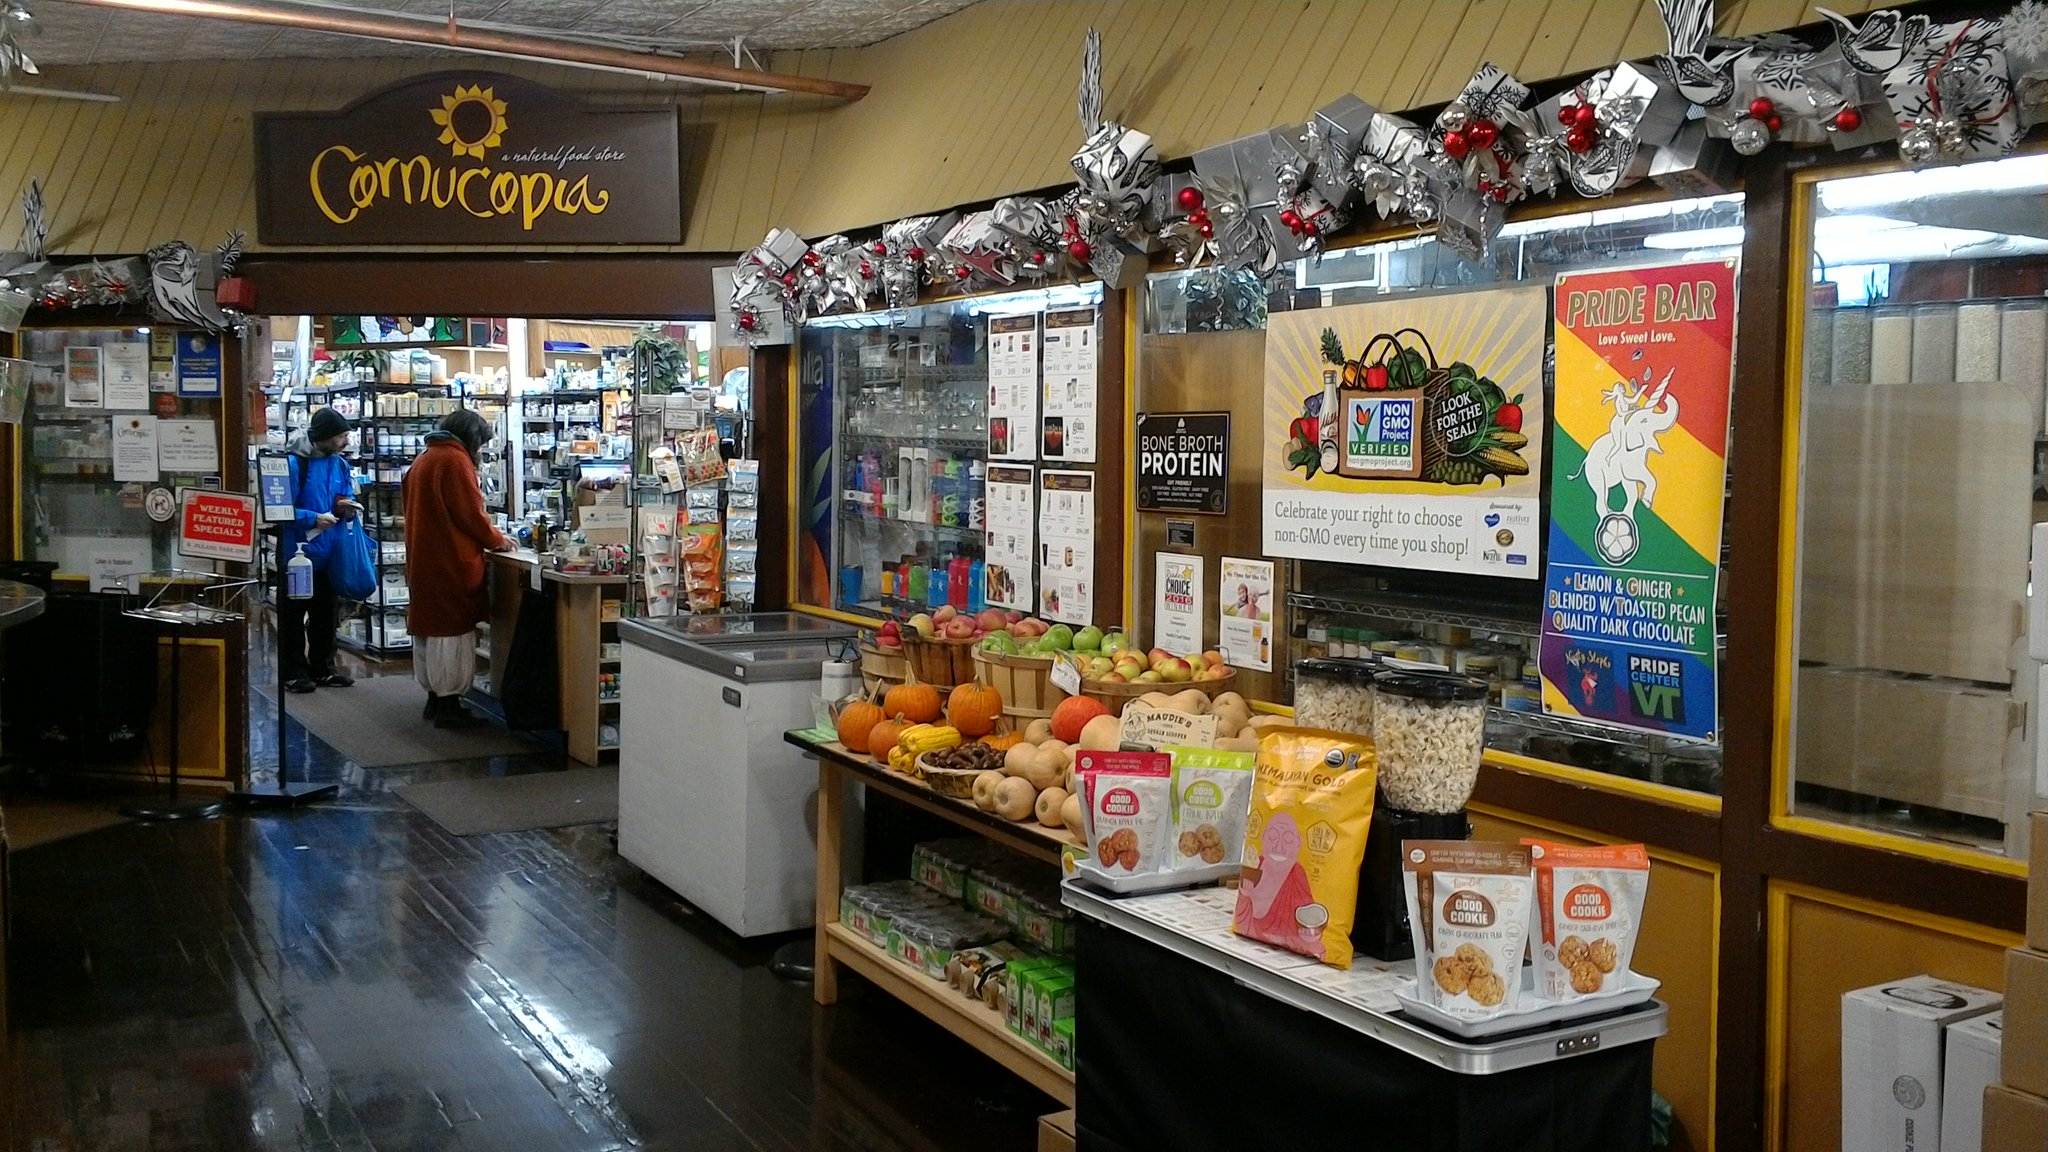 LesserEvil Snacks On Twitter Cornucopia Foods At Thornes Market - Audie's grocery store